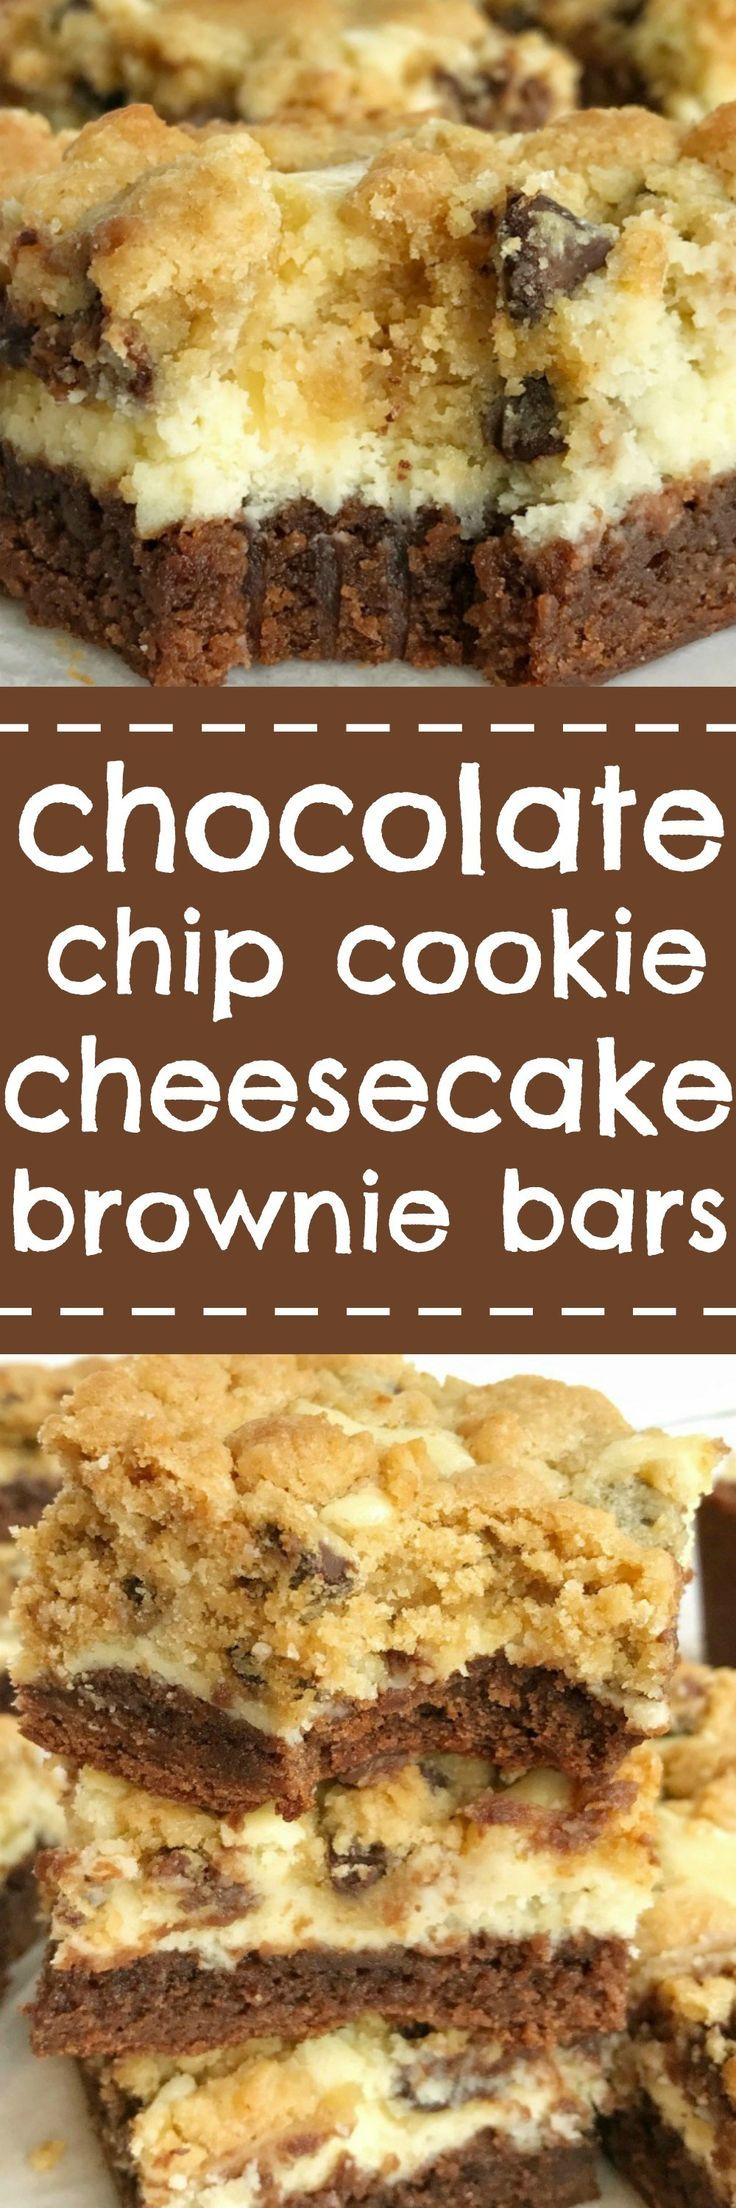 You won't believe how easy these chocolate chip cookie cheesecake brownie bars are to make! Convenient packages of brownie mix and chocolate chip cookies make these bars a cinch to prepare. Brownie base with a sweet cheesecake middle, and topped with choc